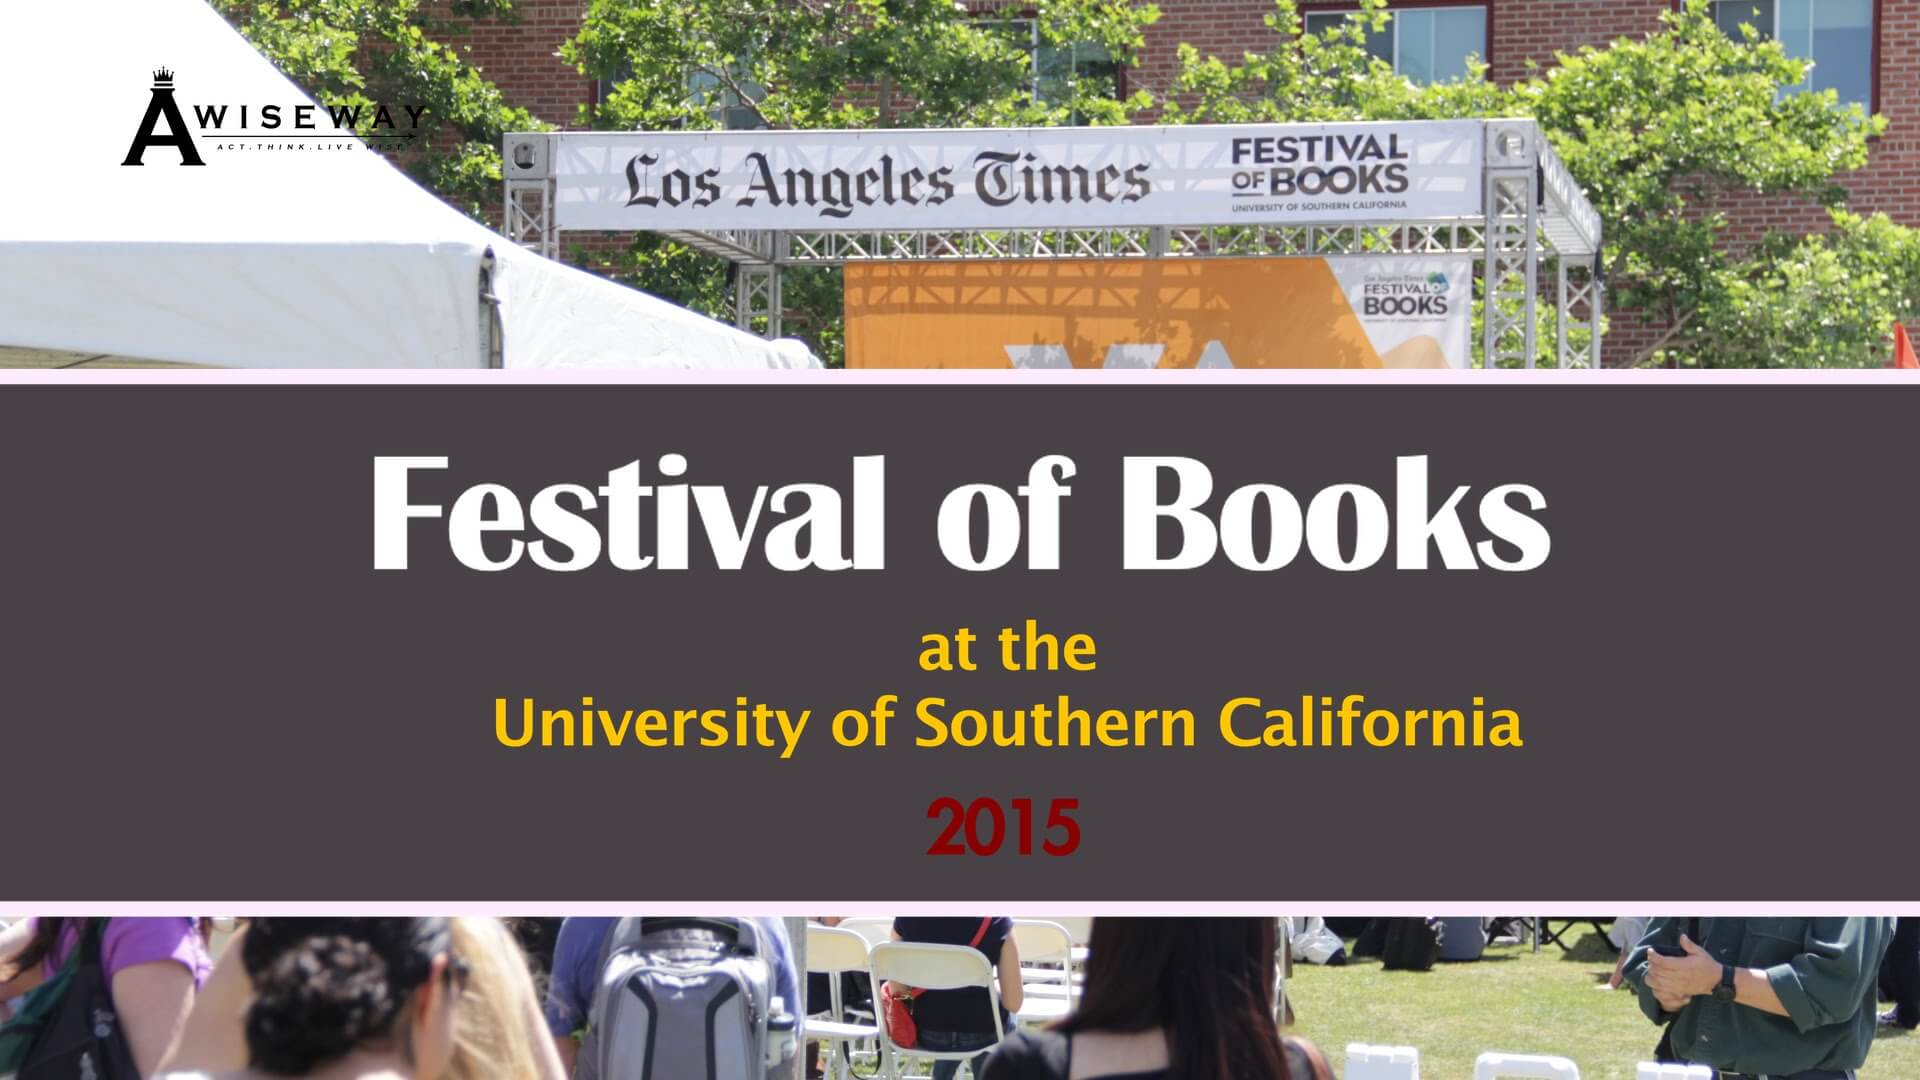 Festival of Books 2015   A Wise Way (Part 2)